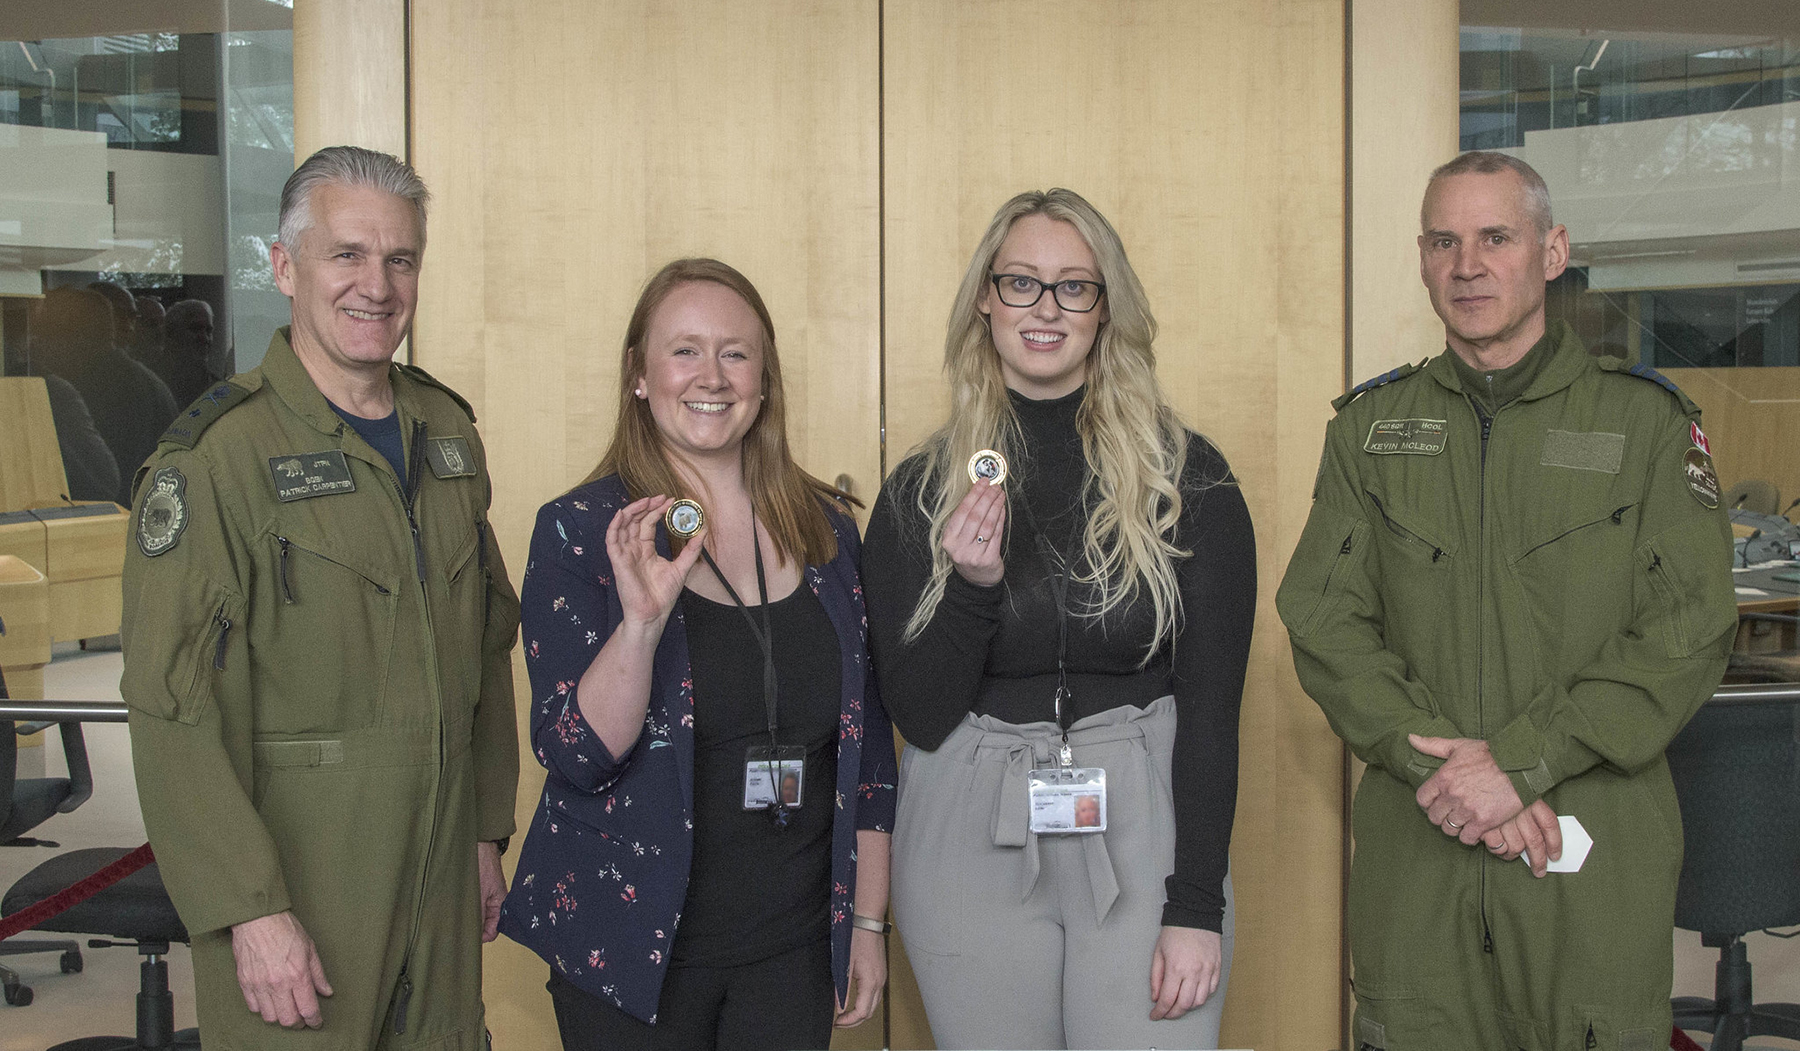 Jeanne Yurris (centre, left) and Savannah Lane, public affairs and communications interns, stand with Brigadier-General Patrick Carpentier (left) and Honorary Colonel Kevin McLeod after receiving Joint Task Force (North) coins during the honorary colonels conference hosted by Joint Task Force (North) on May 29, 2019, in Yellowknife, Northwest Territories. PHOTO: Captain Soomin Kim